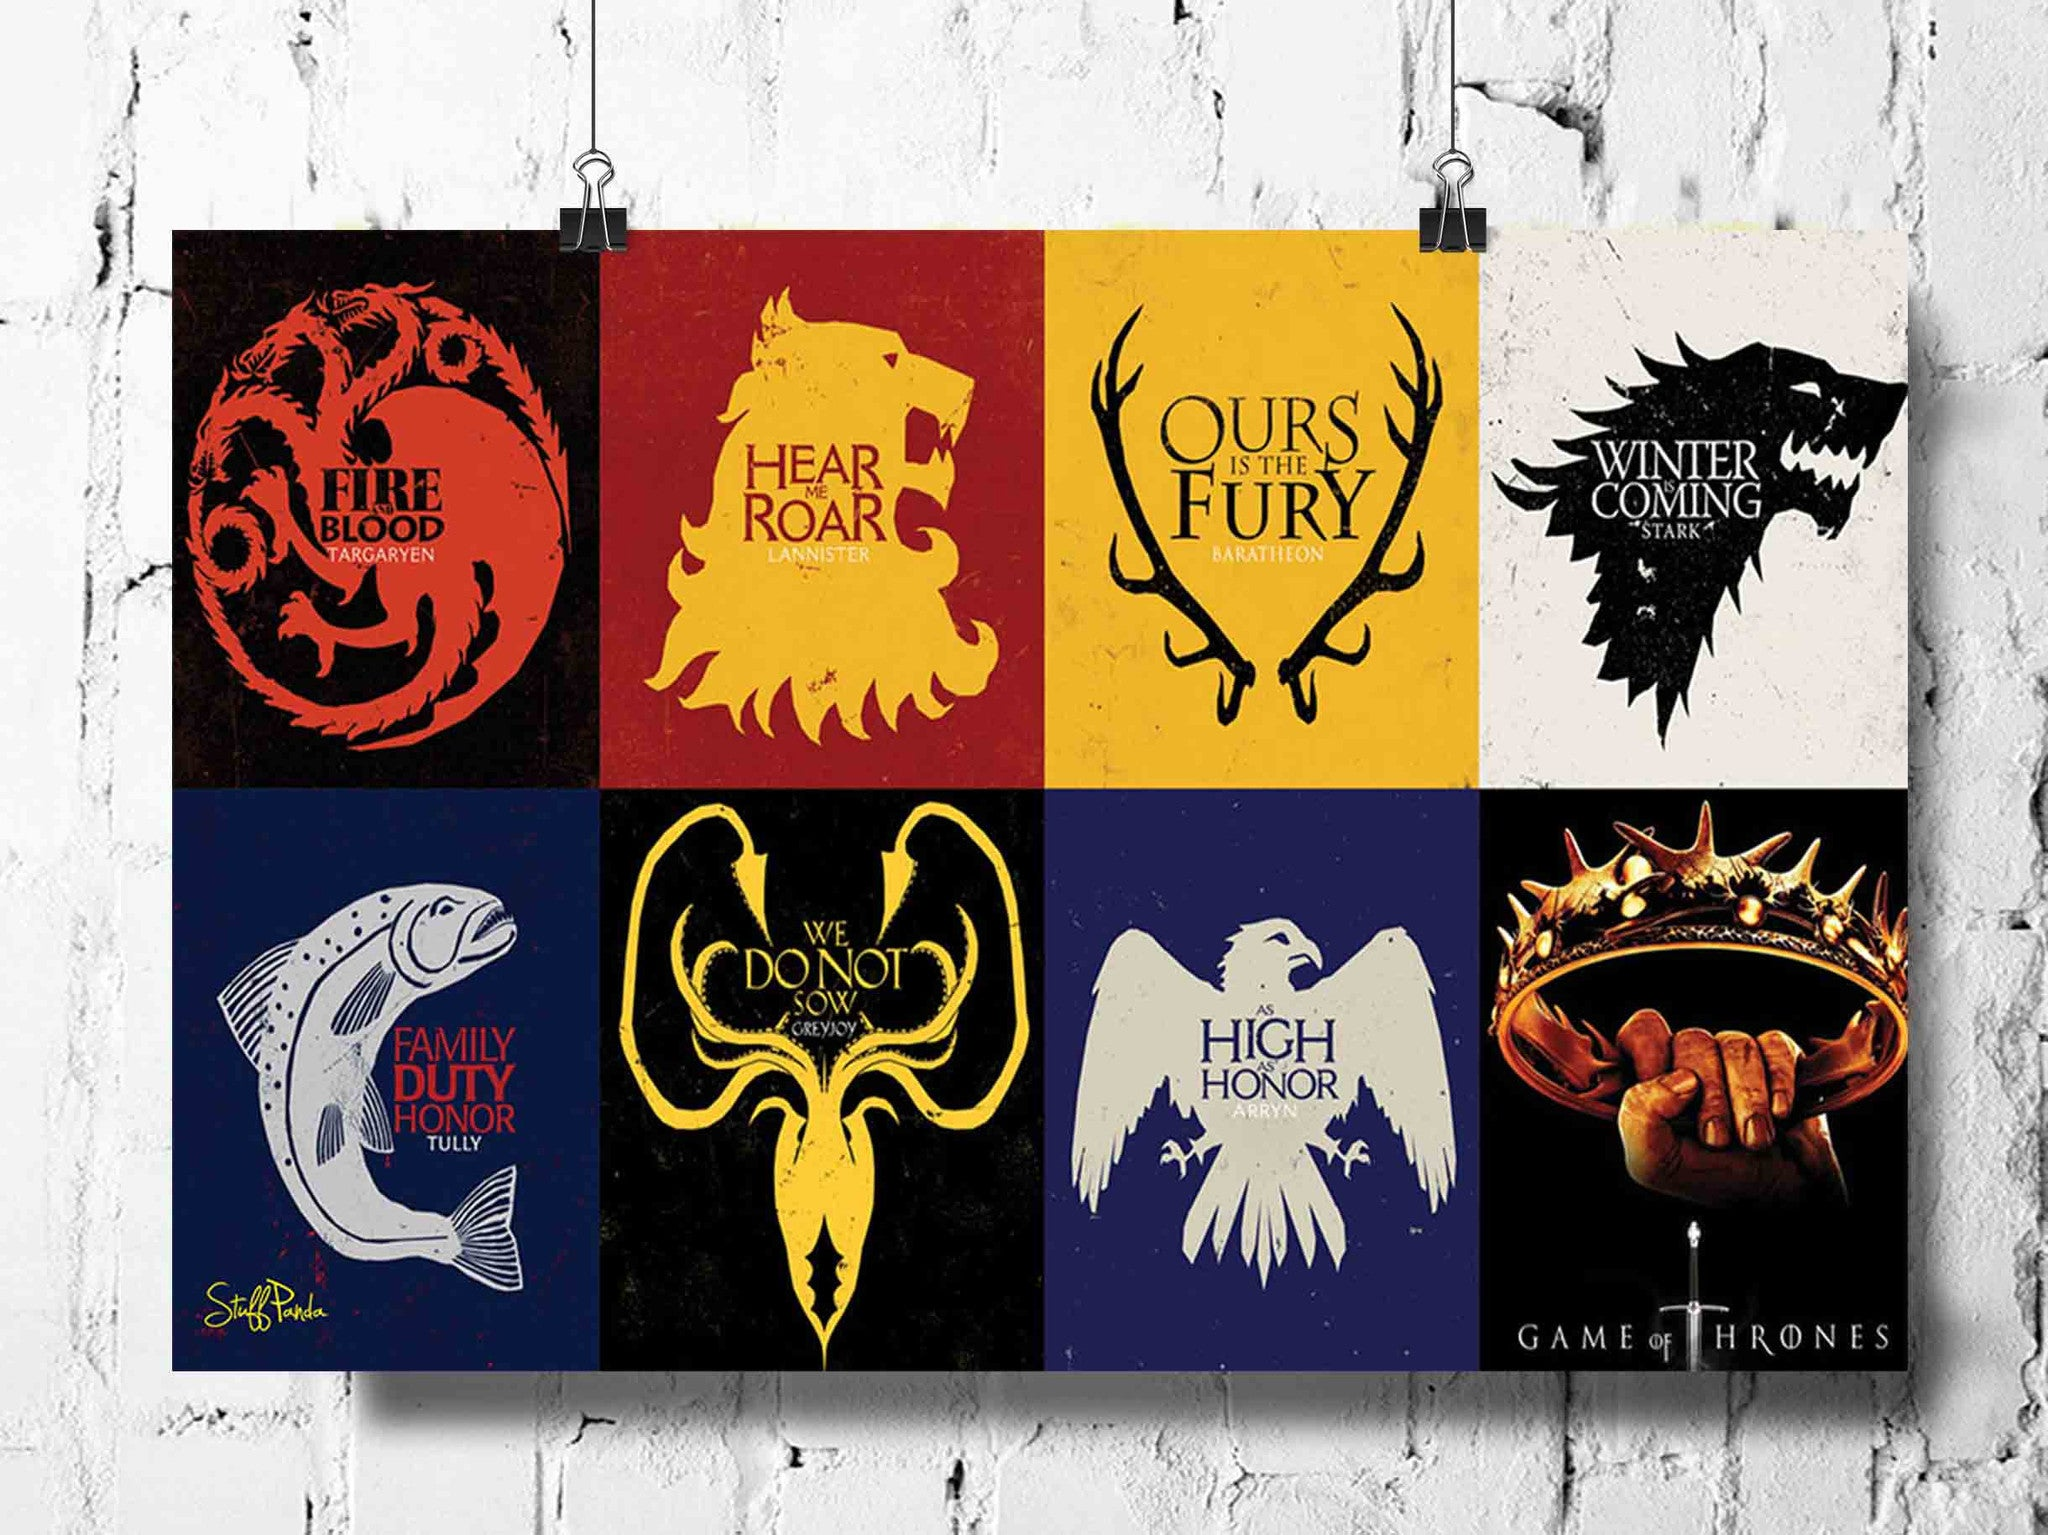 Cool Funky Game of Thrones wall posters, art prints, stickers decals Box flags - stuffpanda - 1